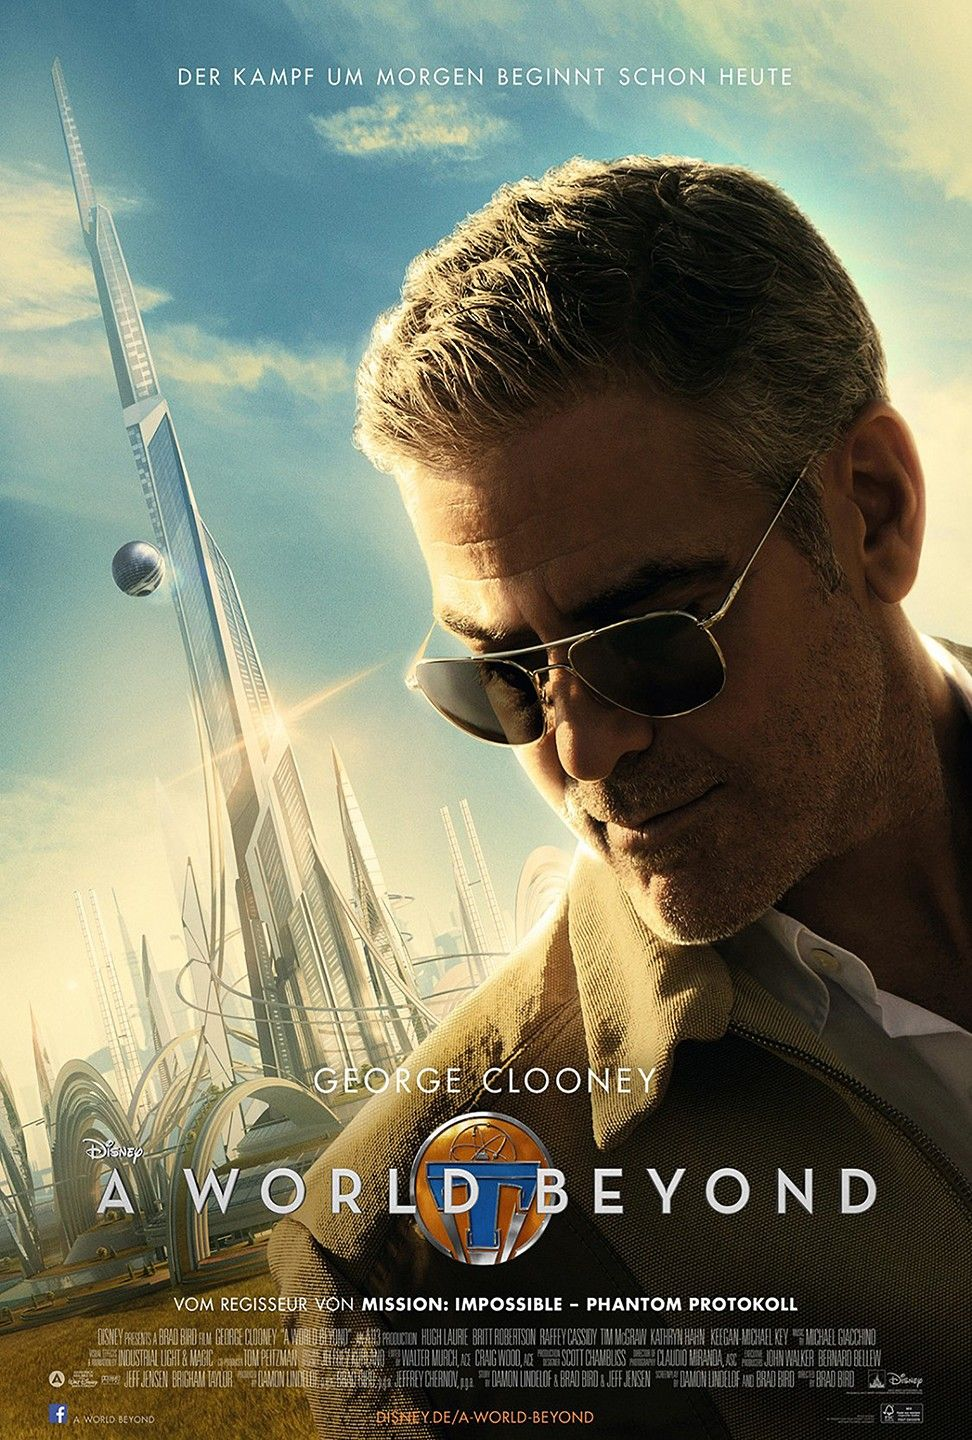 Tomorrowland Extra Large Movie Poster Image Internet Movie Poster Awards Gallery Carteles De Peliculas Peliculas Completas Carteles De Cine